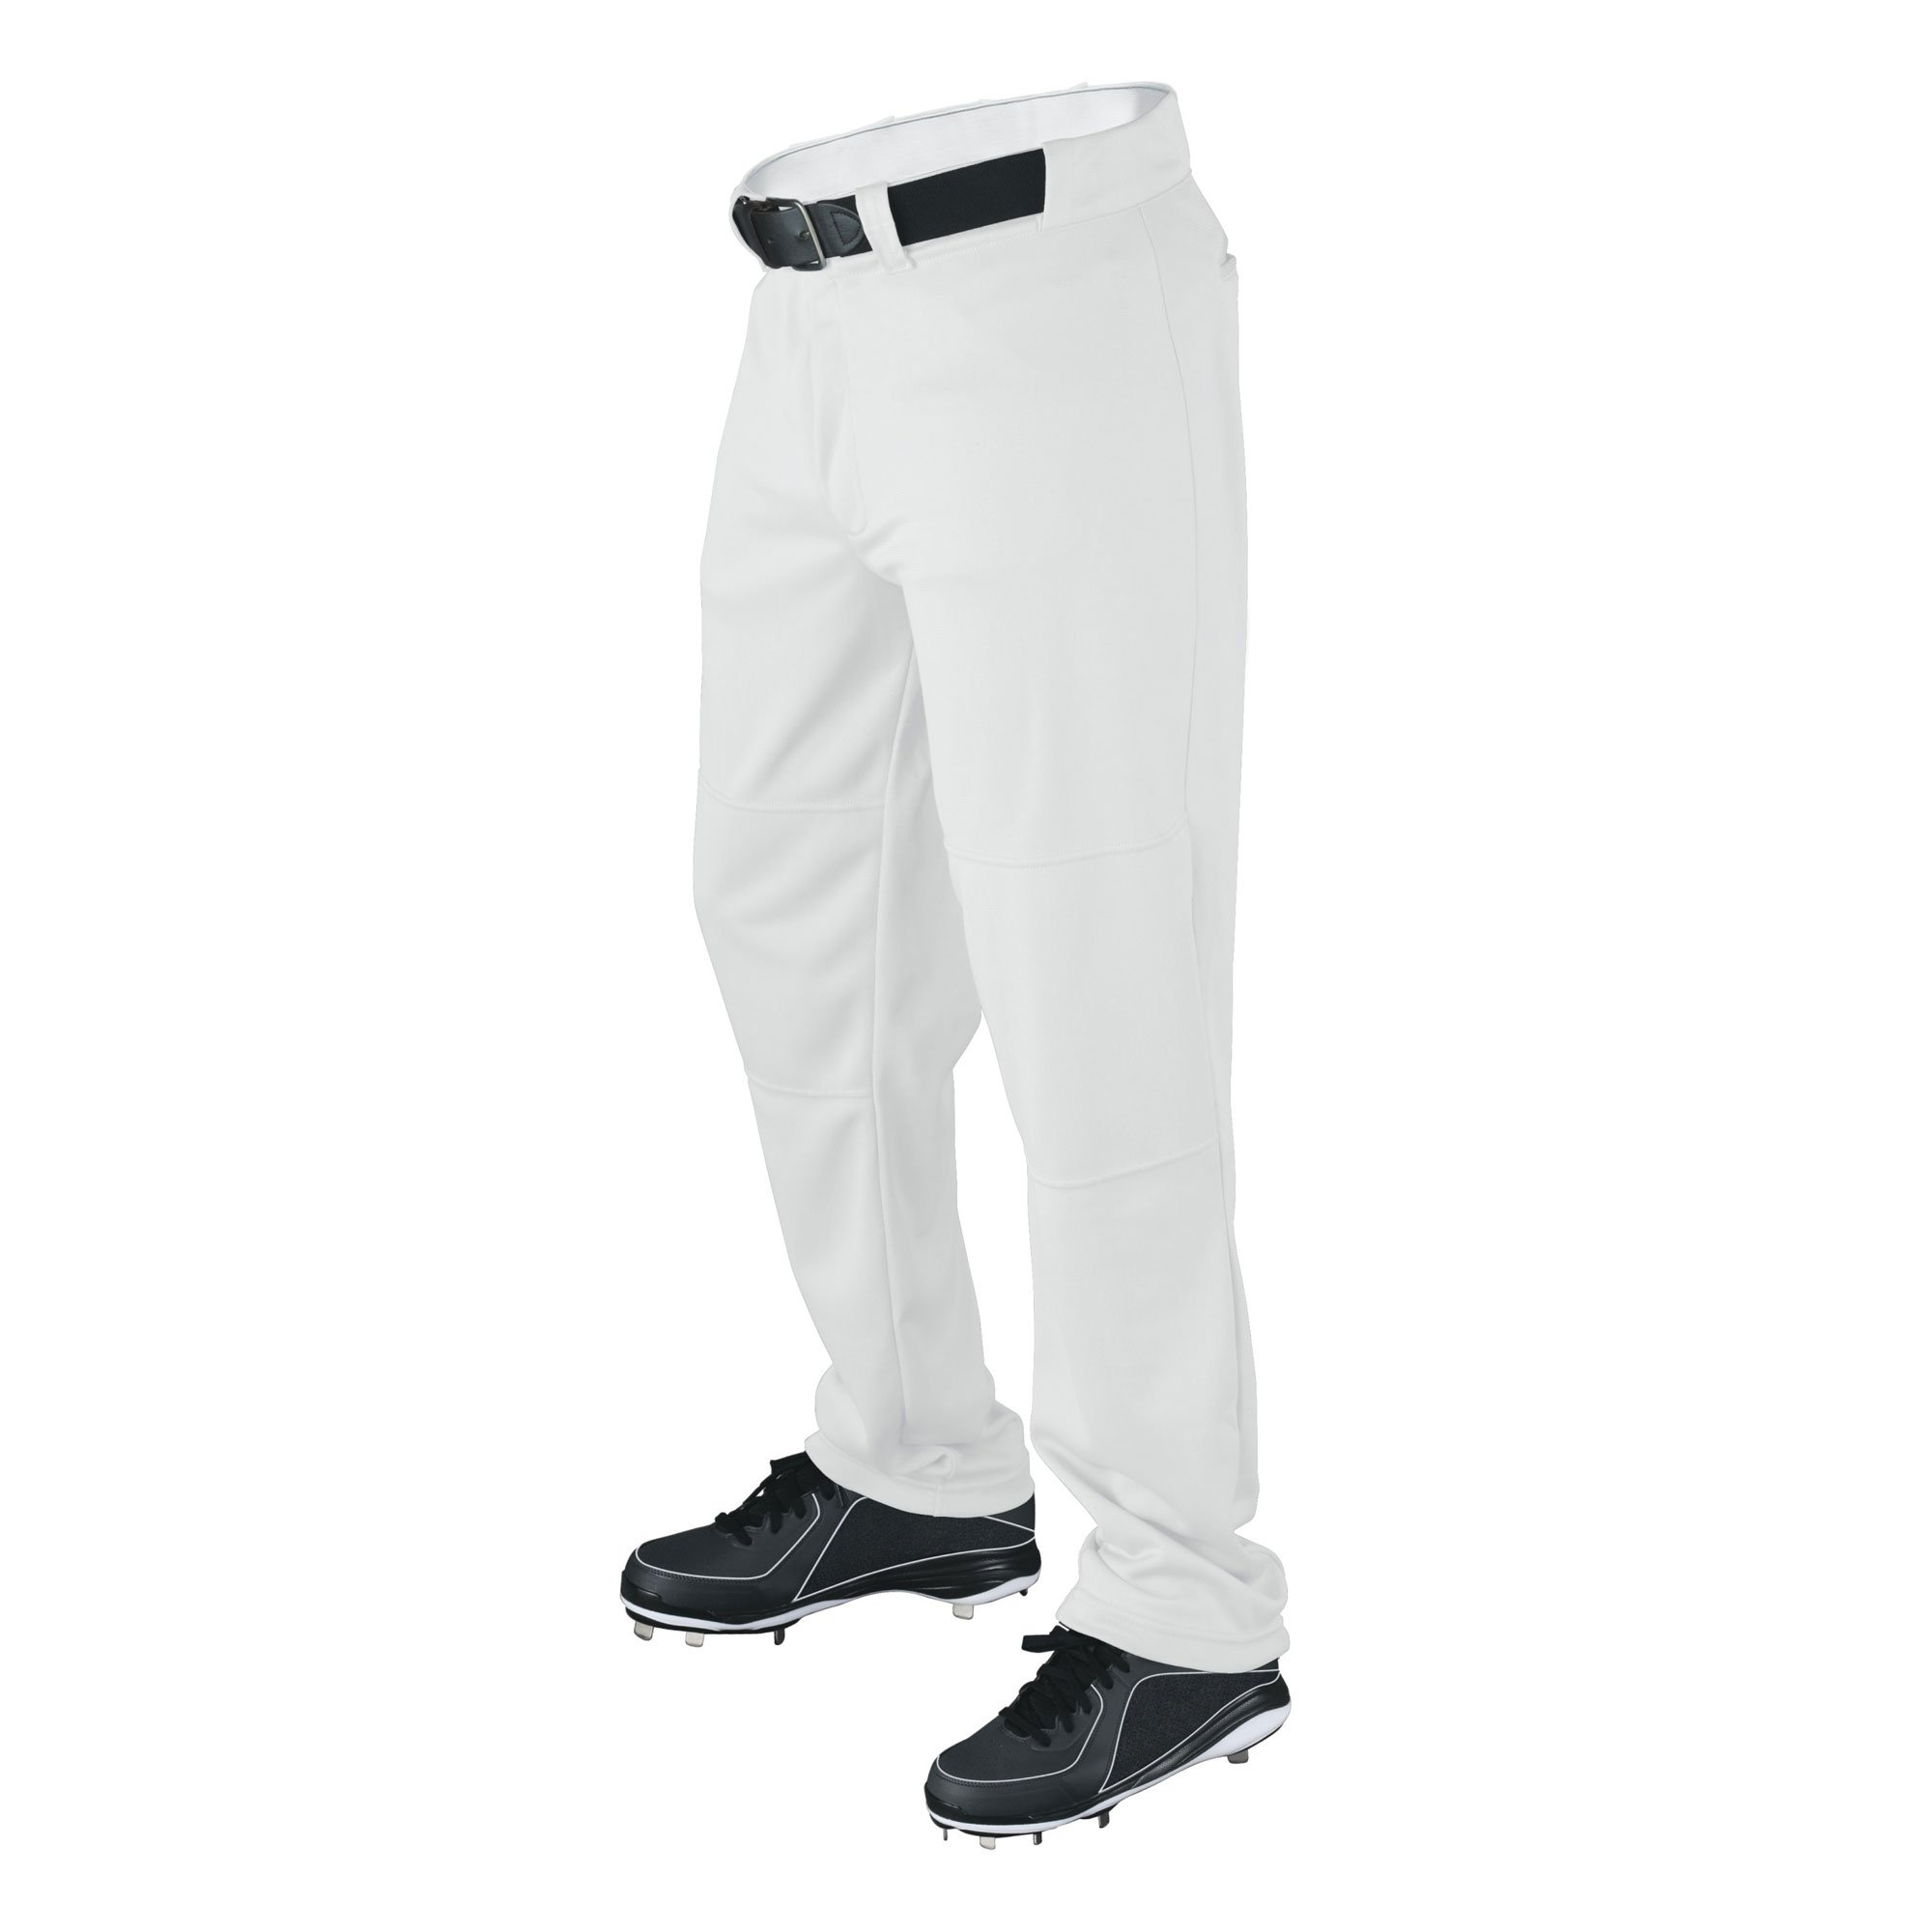 Wilson Youth Classic Relaxed Fit Baseball Pant, White, Large by Wilson